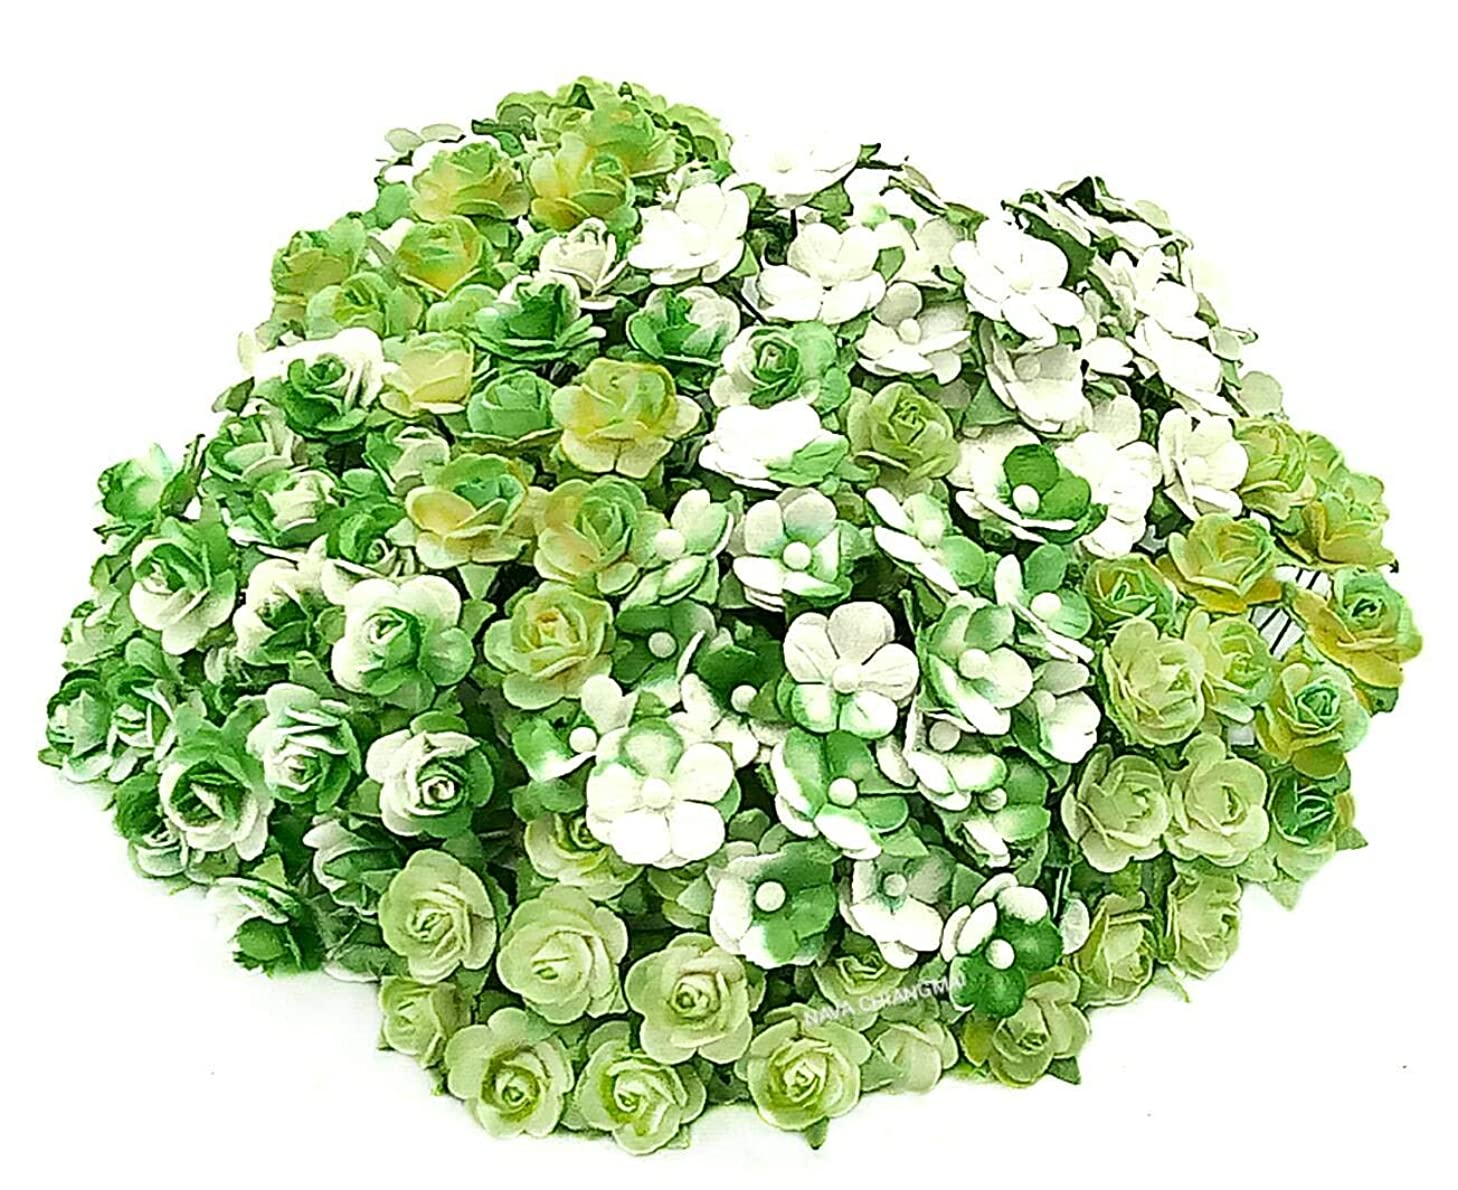 NAVA CHIANGMAI Artificial Mulberry Paper Rose Flower Mixed Color Tone Decorative Flowers for Crafts, Scrapbook Flowers Embellishments,Paper Craft Flowers,Mini Decorative Flowers. (Green Tone)